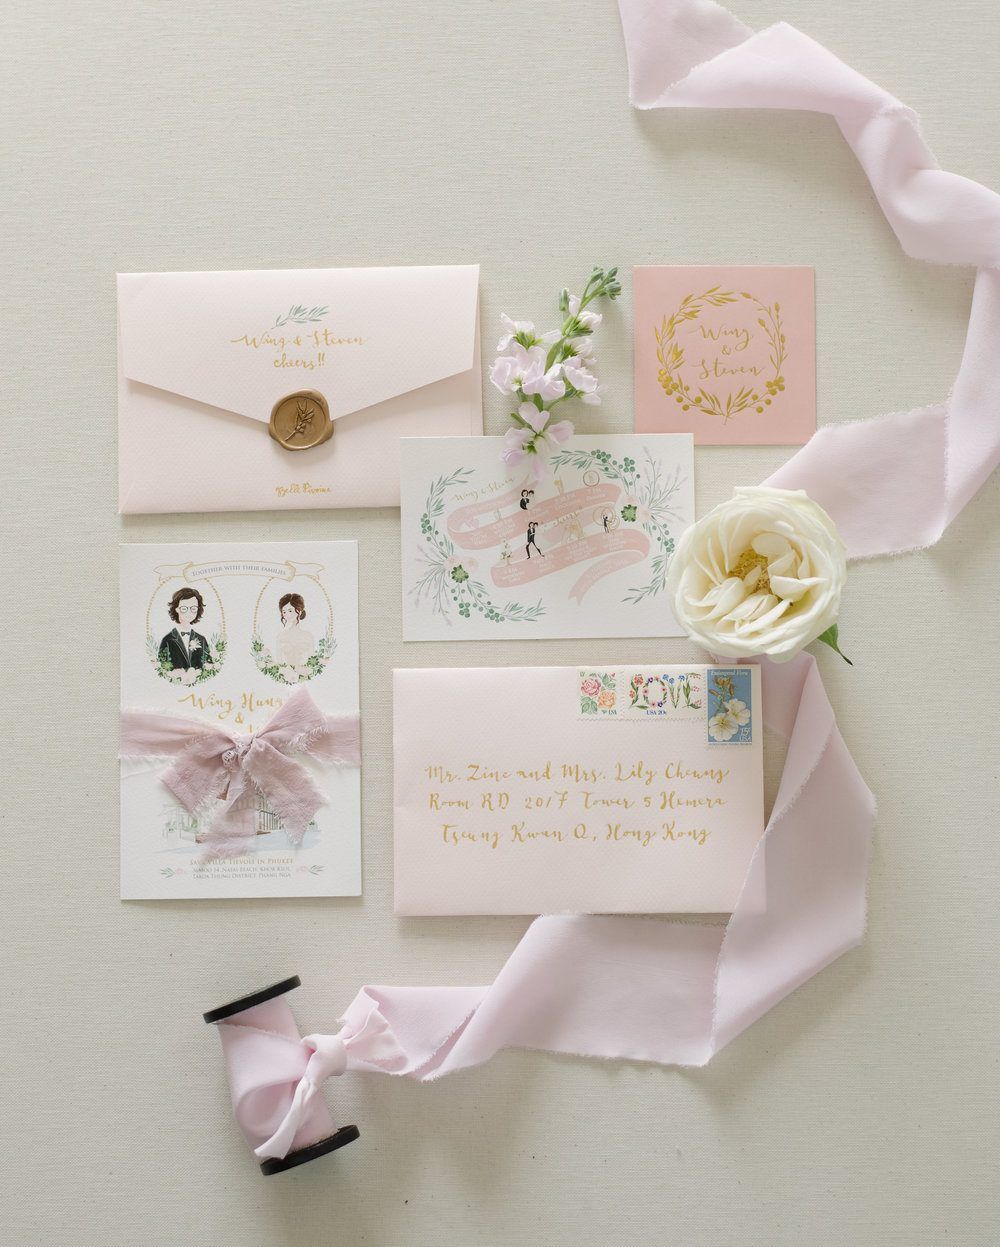 Intimate Wedding Invitation Wording: Intimate Thailand Wedding With A Pastel Garden Ambiance